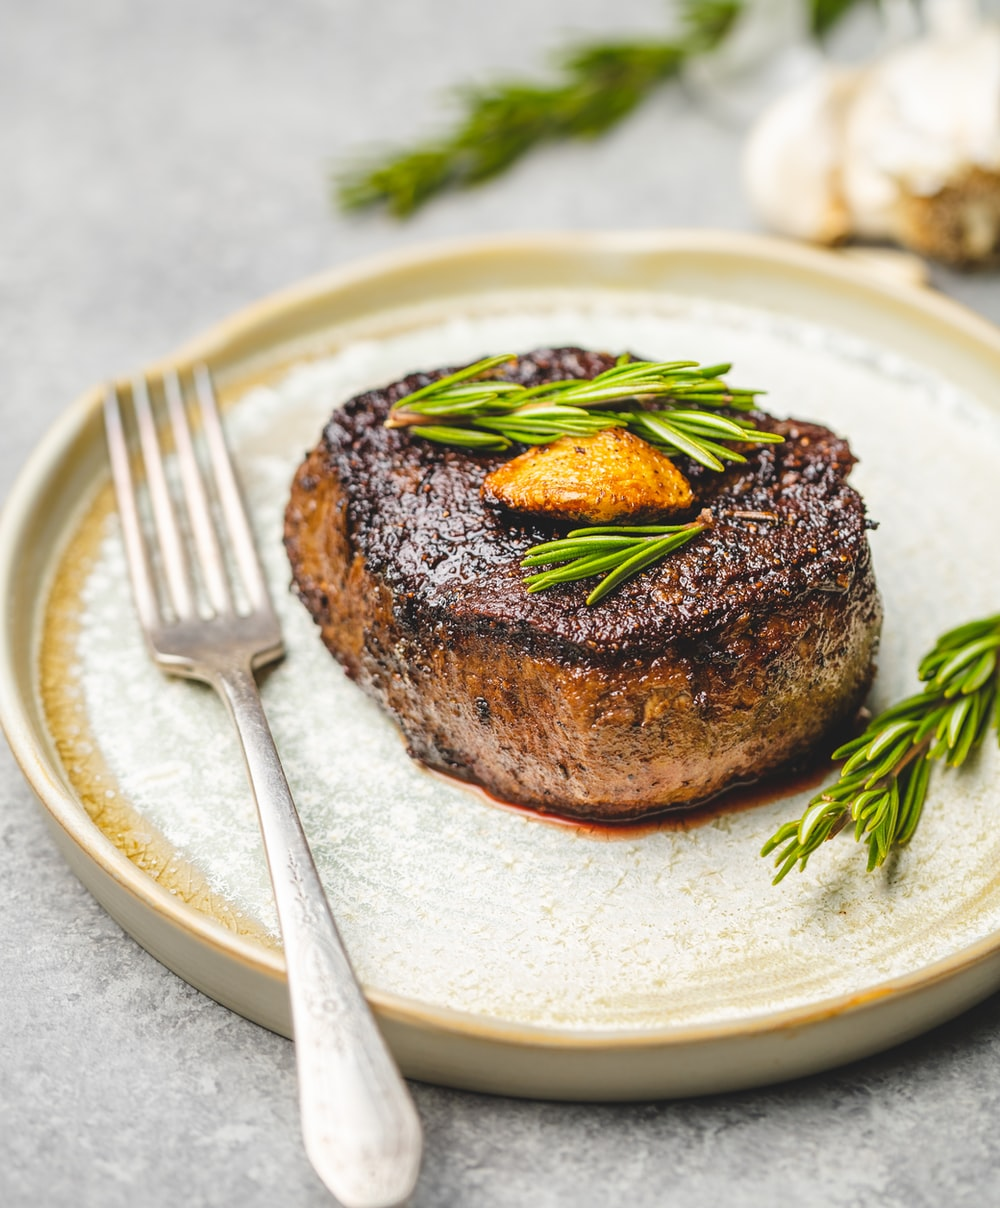 beef steak with fork